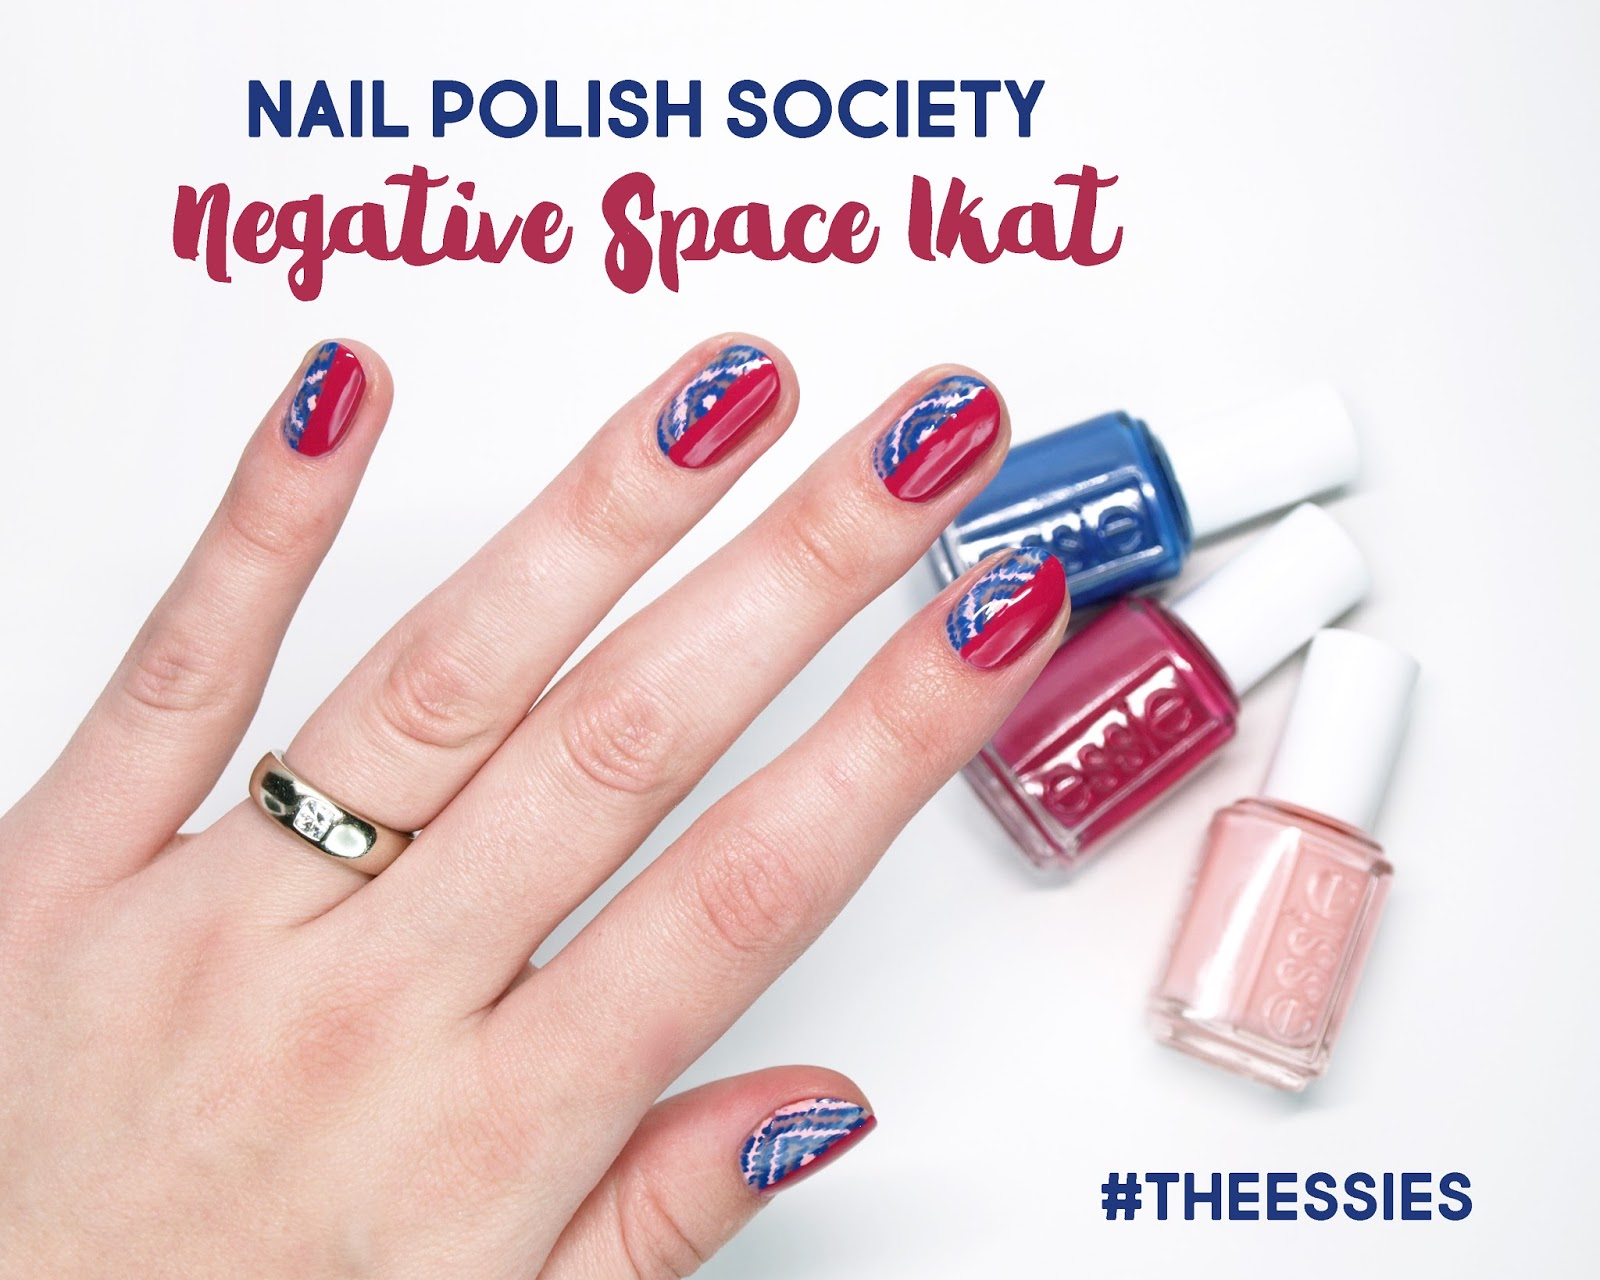 Nail Polish Society The Essies 2017 Top Ten Finalist Nail Art